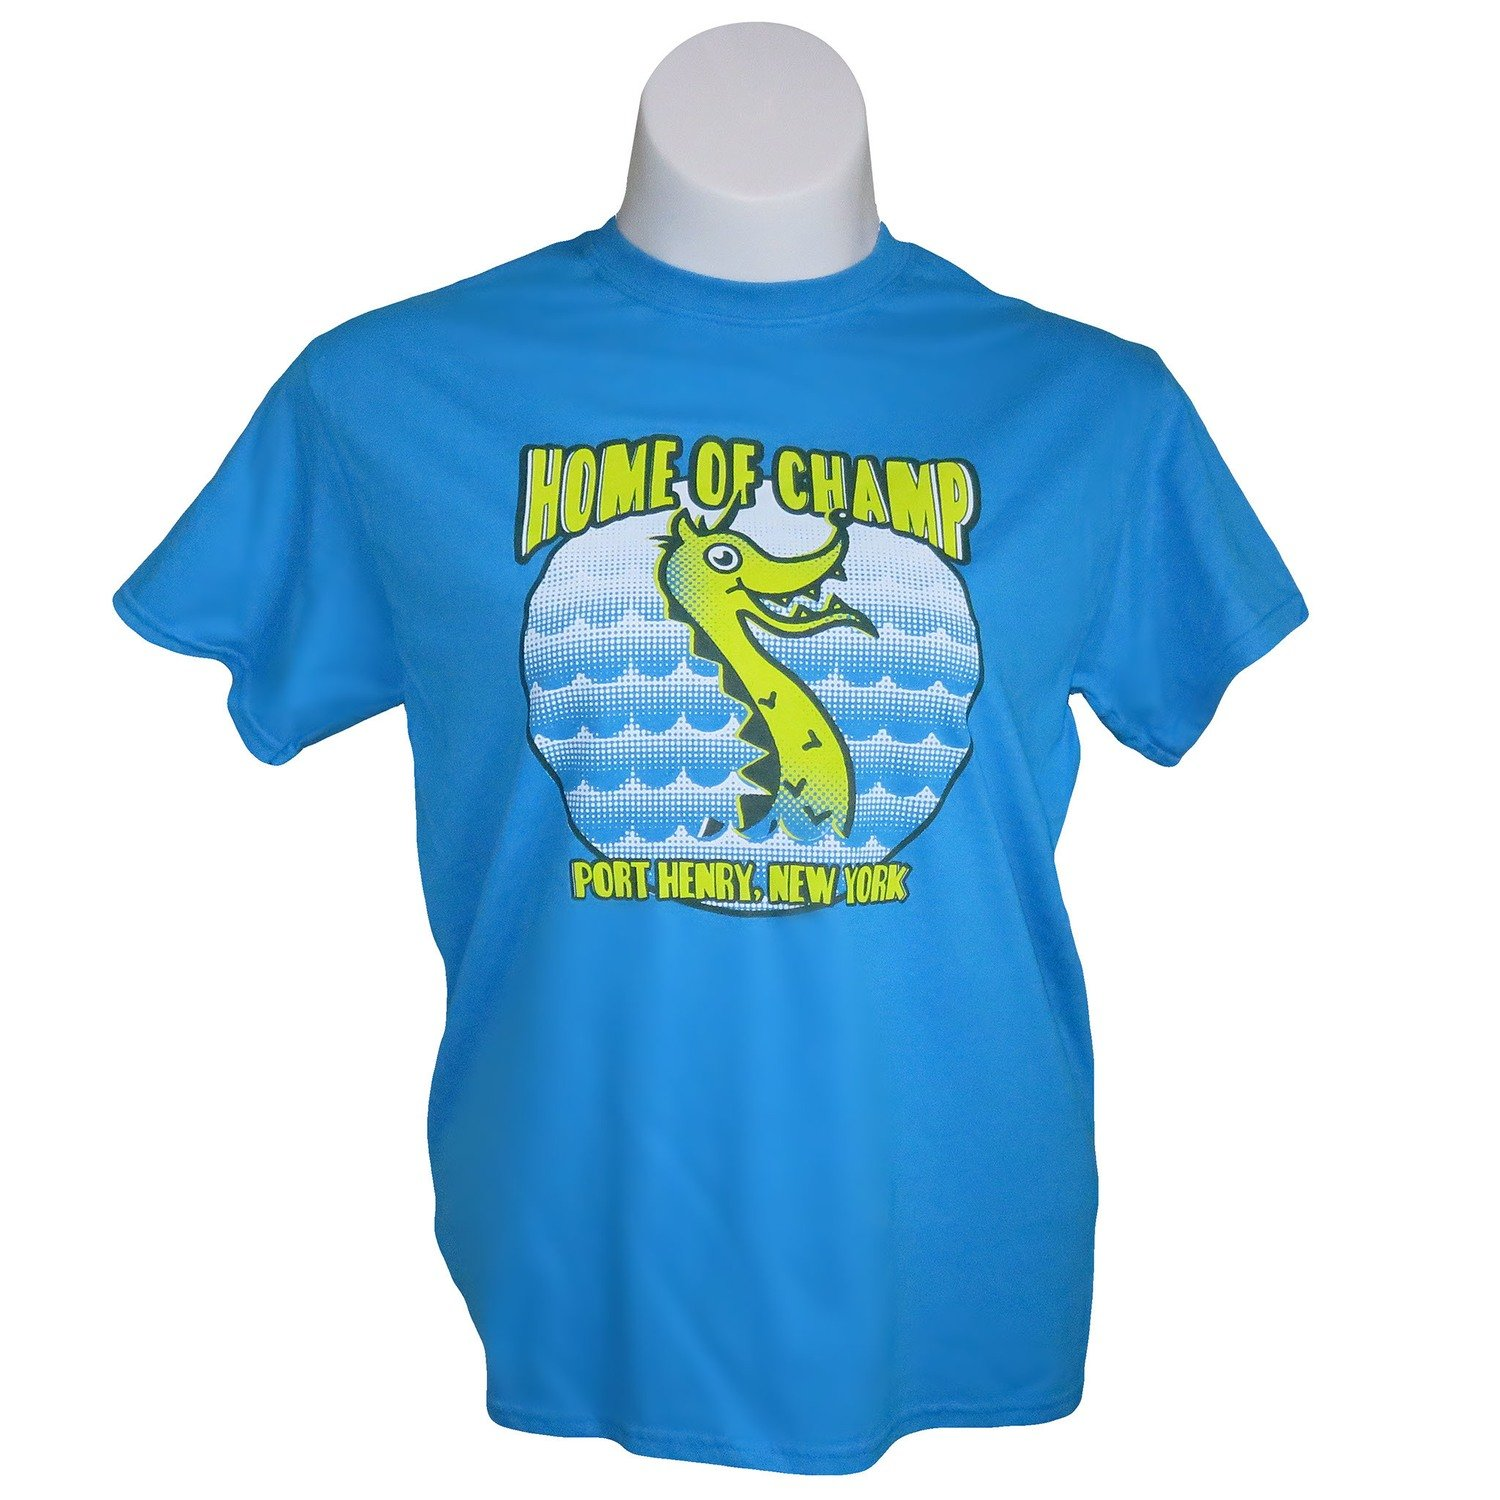 Home of Champ T-shirt